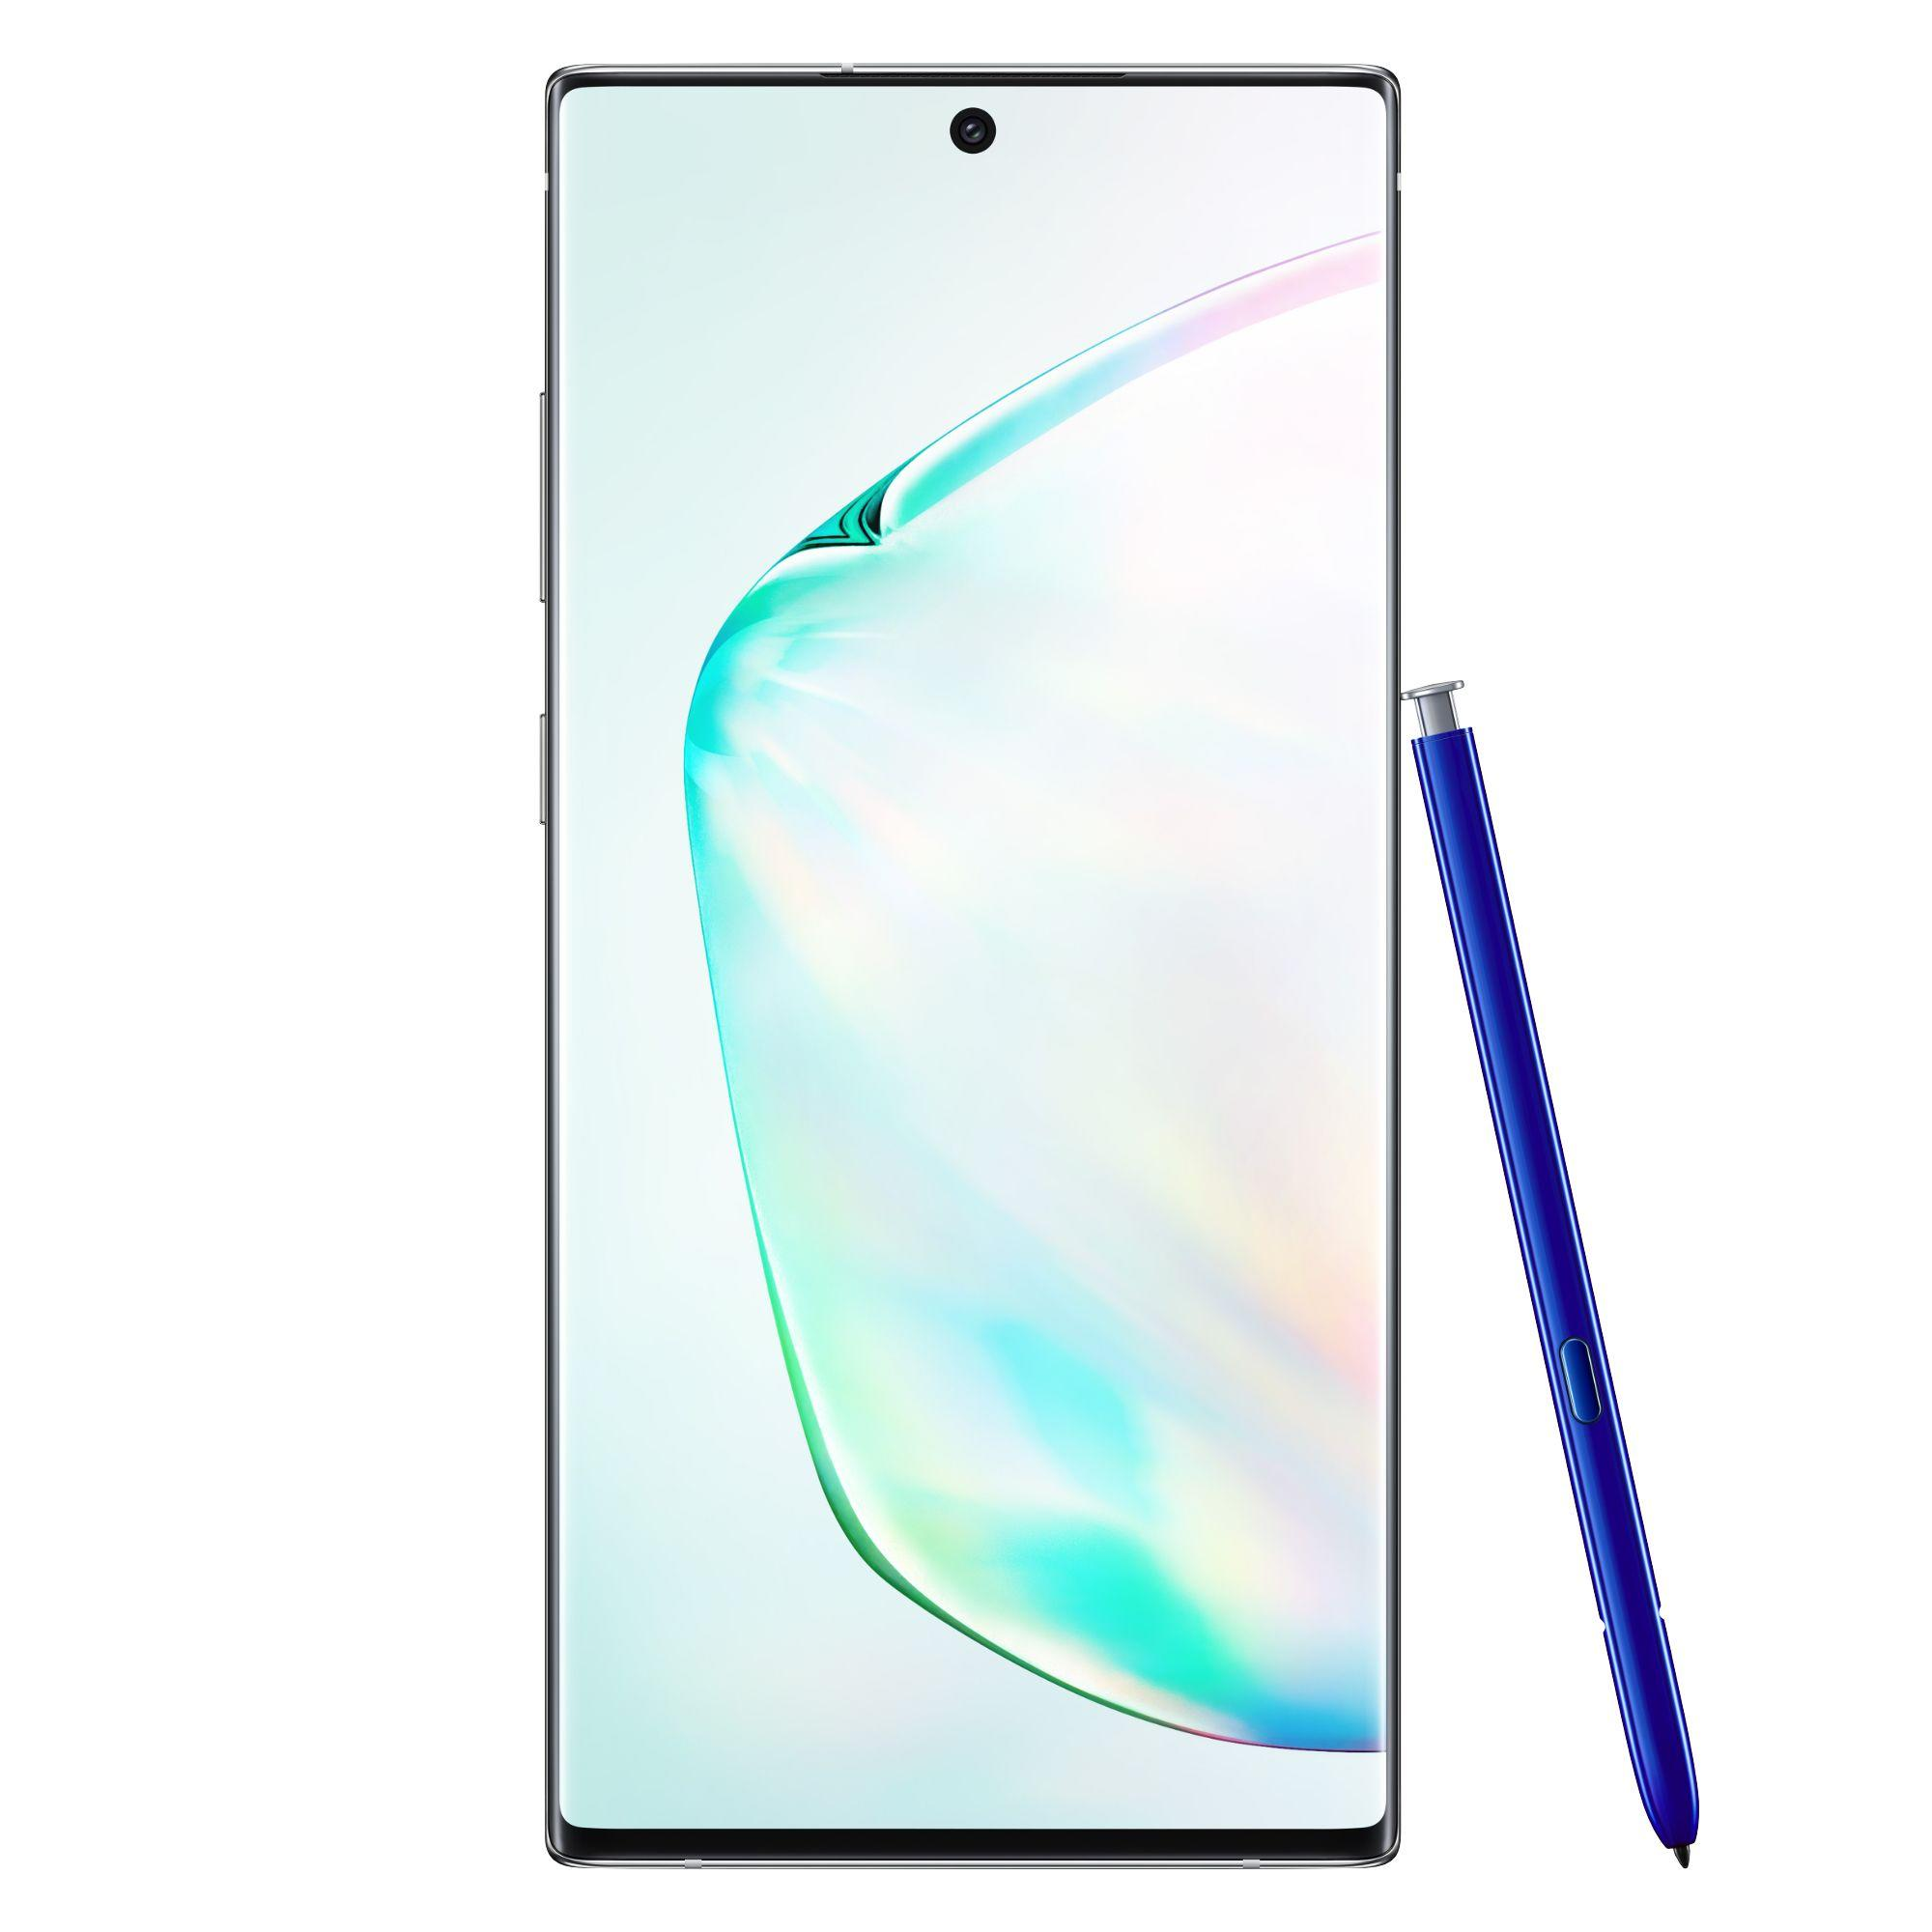 "<p><strong>Samsung</strong></p><p>amazon.com</p><p><strong>$949.99</strong></p><p><a href=""http://www.amazon.com/dp/B07V6NJWH7/?tag=syn-yahoo-20&ascsubtag=%5Bartid%7C2089.g.158%5Bsrc%7Cyahoo-us"" rel=""nofollow noopener"" target=""_blank"" data-ylk=""slk:Shop Now"" class=""link rapid-noclick-resp"">Shop Now</a></p><p>The Galaxy Note10 and the Galaxy Note10+ are Samsung's most powerful, most feature-packed smartphones to date. Like all Note products that precede them, the duo of range-topping Galaxy phones are defined by their S Pen stylus, as well as their massive display panels. Both of them have ditched the audio jack and the Bixby button that their predecessors had.</p><p>It's worth noting that, in addition to a bigger screen with higher resolution, the Note10+ also comes with a desktop computer-worthy 12 GB of RAM. The bigger Note is also equipped with a larger battery.</p><p>The S Pen stylus of the new Galaxy Note phones is better than ever. Equipped with Bluetooth connectivity, the built-in accessory can perform a host of useful tasks. It can even allow you to channel your inner Harry Potter by opening apps and playing games with gesture controls.</p><p>Unsurprisingly, the Galaxy Note and the Galaxy Note10+ have <a href=""https://news.samsung.com/global/samsung-galaxy-note10-plus-5g-earns-first-place-distinction-in-dxomarks-selfie-camera-rear-cameras-and-video-rankings"" rel=""nofollow noopener"" target=""_blank"" data-ylk=""slk:superb front- and rear-facing cameras"" class=""link rapid-noclick-resp"">superb front- and rear-facing cameras</a>. It's worth noting that the bigger Note has one extra sensor on the back, which is solely tasked with collecting data to enhance your images. The video-recording and editing capabilities of both Note10 variants are also better than ever.</p><p><strong>Chipset:</strong> Qualcomm Snapdragon 855<br><strong>Display:</strong> 6.3-inch FHD+ Infinity Super AMOLED display (Note10), 6.8-inch QHD+ Infinity Super AMOLED display (Note10+)<br><strong>Camera: </strong>Triple camera with 12MP main, 12 MP telephoto, 16 MP wide-angle; 10MP selfie camera<br><strong>Memory: </strong>8/12 GB of RAM, up to 512 GB of non-expandable storage<br><strong>Battery:</strong> 3,500 mAh (Note10), 4,300 mAh (Note10), fast wired and wireless charging, reverse wireless charging<br><strong>Other:</strong> Built-in stereo speakers, waterproof body<br><br><strong>More: </strong><a href=""https://www.bestproducts.com/tech/gadgets/a28763194/samsung-galaxy-note10-plus-review/"" rel=""nofollow noopener"" target=""_blank"" data-ylk=""slk:Read Our Full Review Here"" class=""link rapid-noclick-resp"">Read Our Full Review Here</a><br></p>"